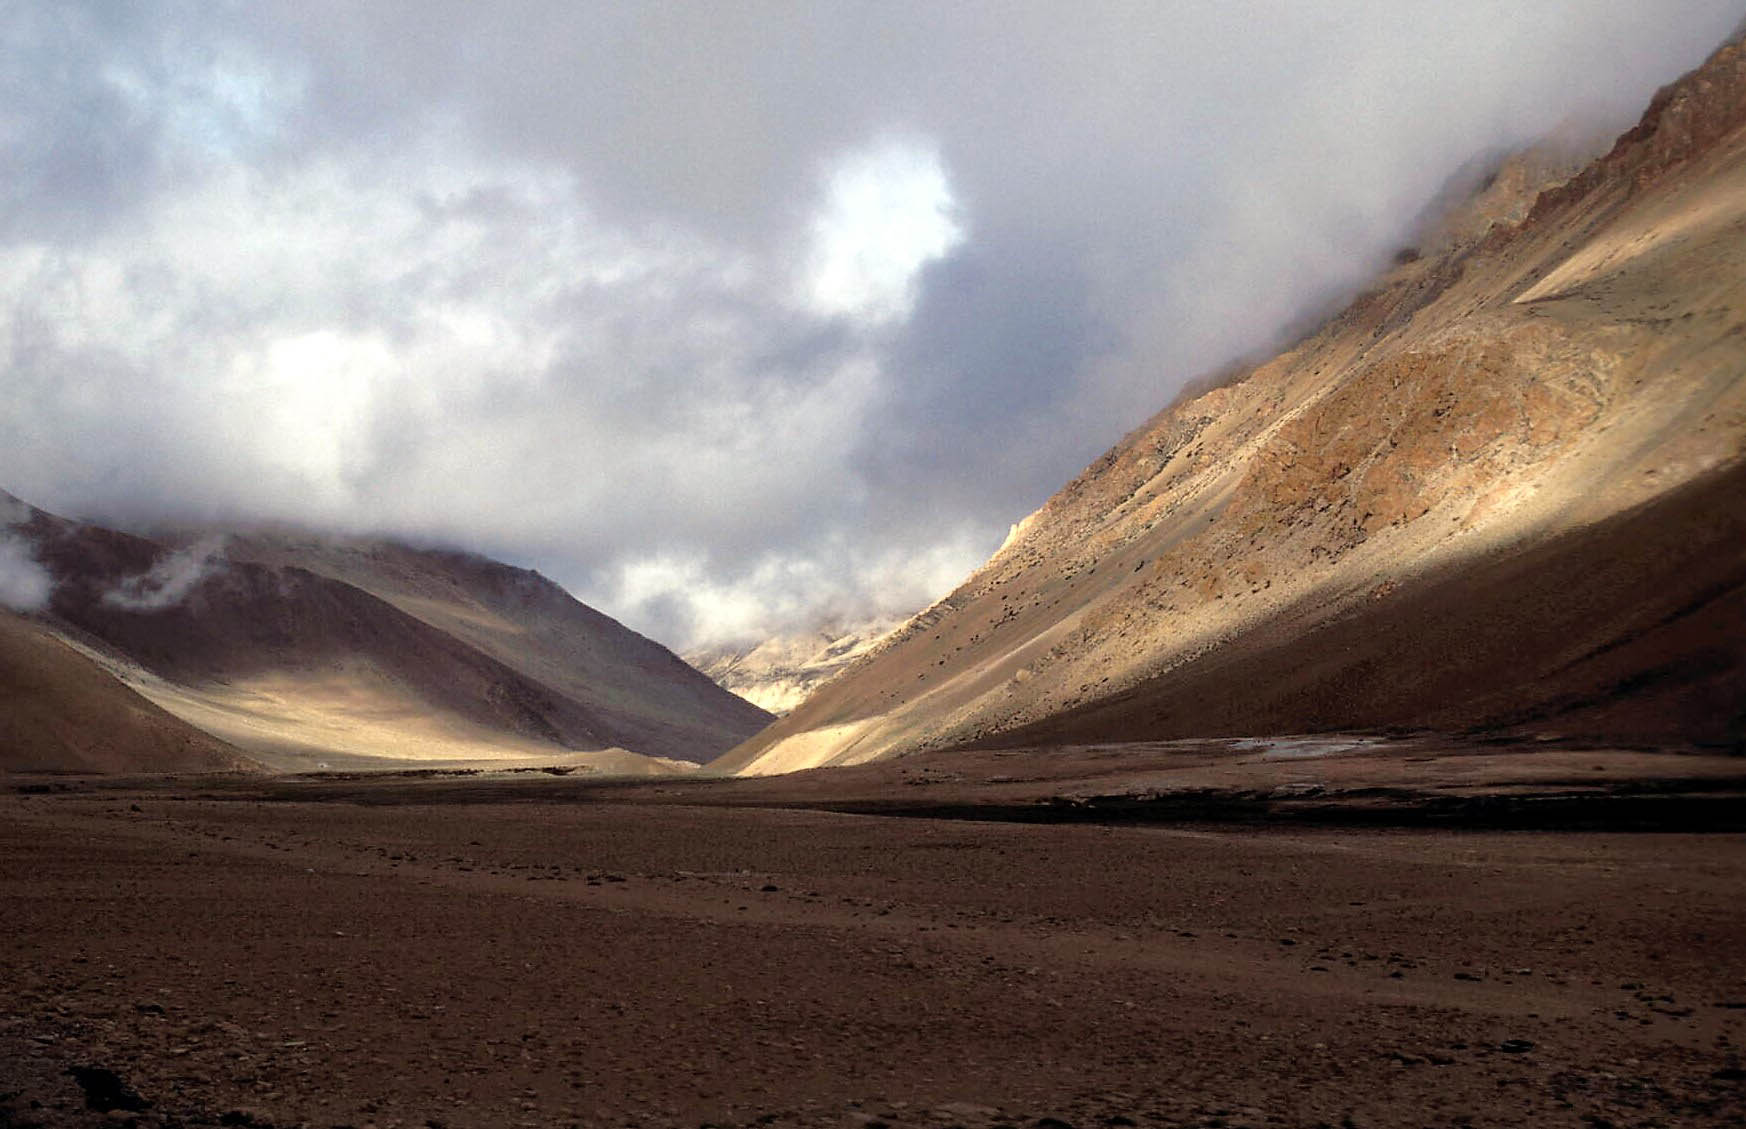 we were travelling in Tibet on our way to kailas and mansarovar. The entire landscape was barren ut the play of light and shadows cast a beautiful spell.